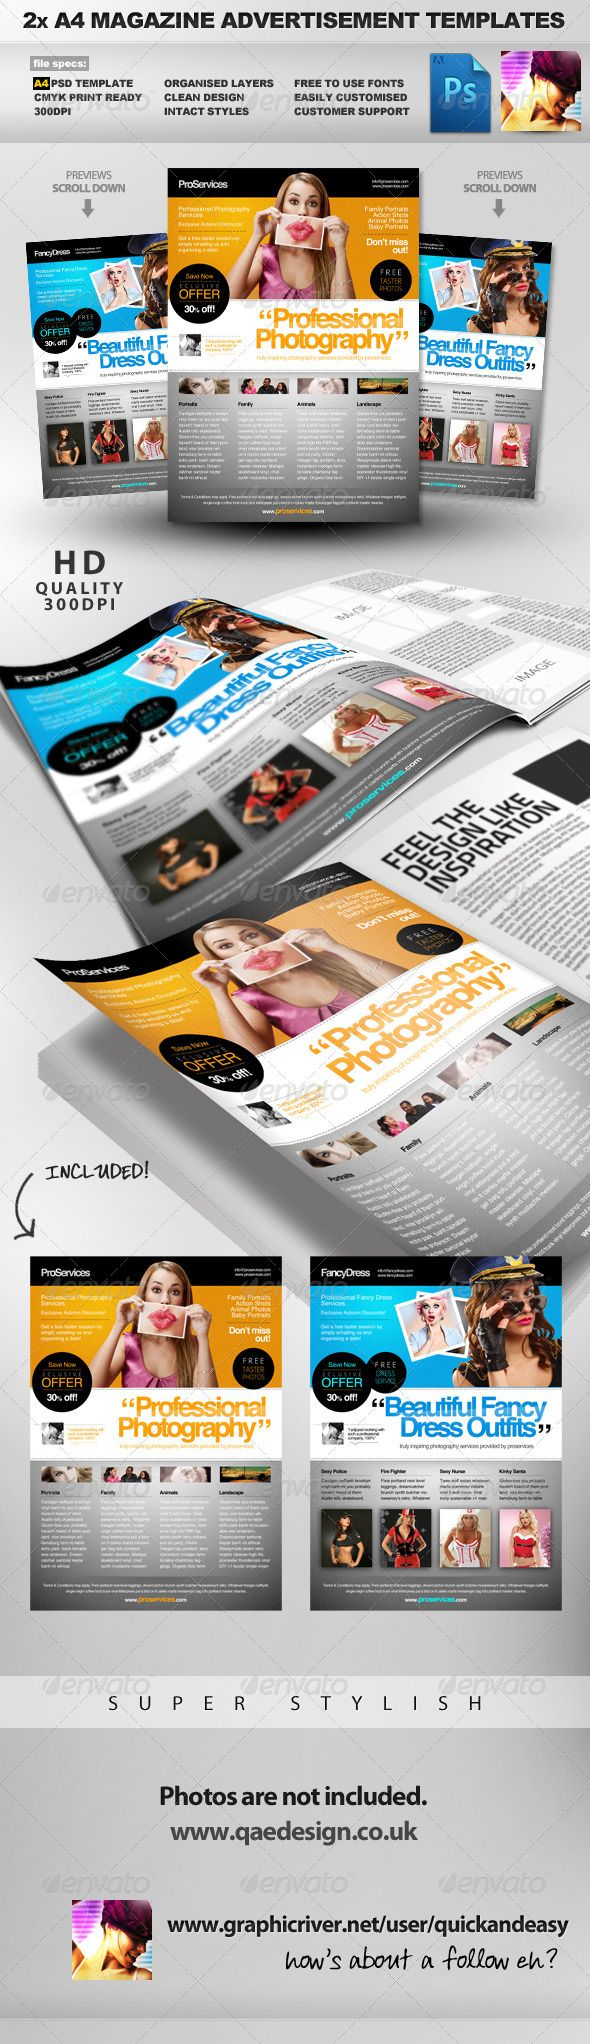 pro services 2 a4 magazine ad templates by quickandeasy a4